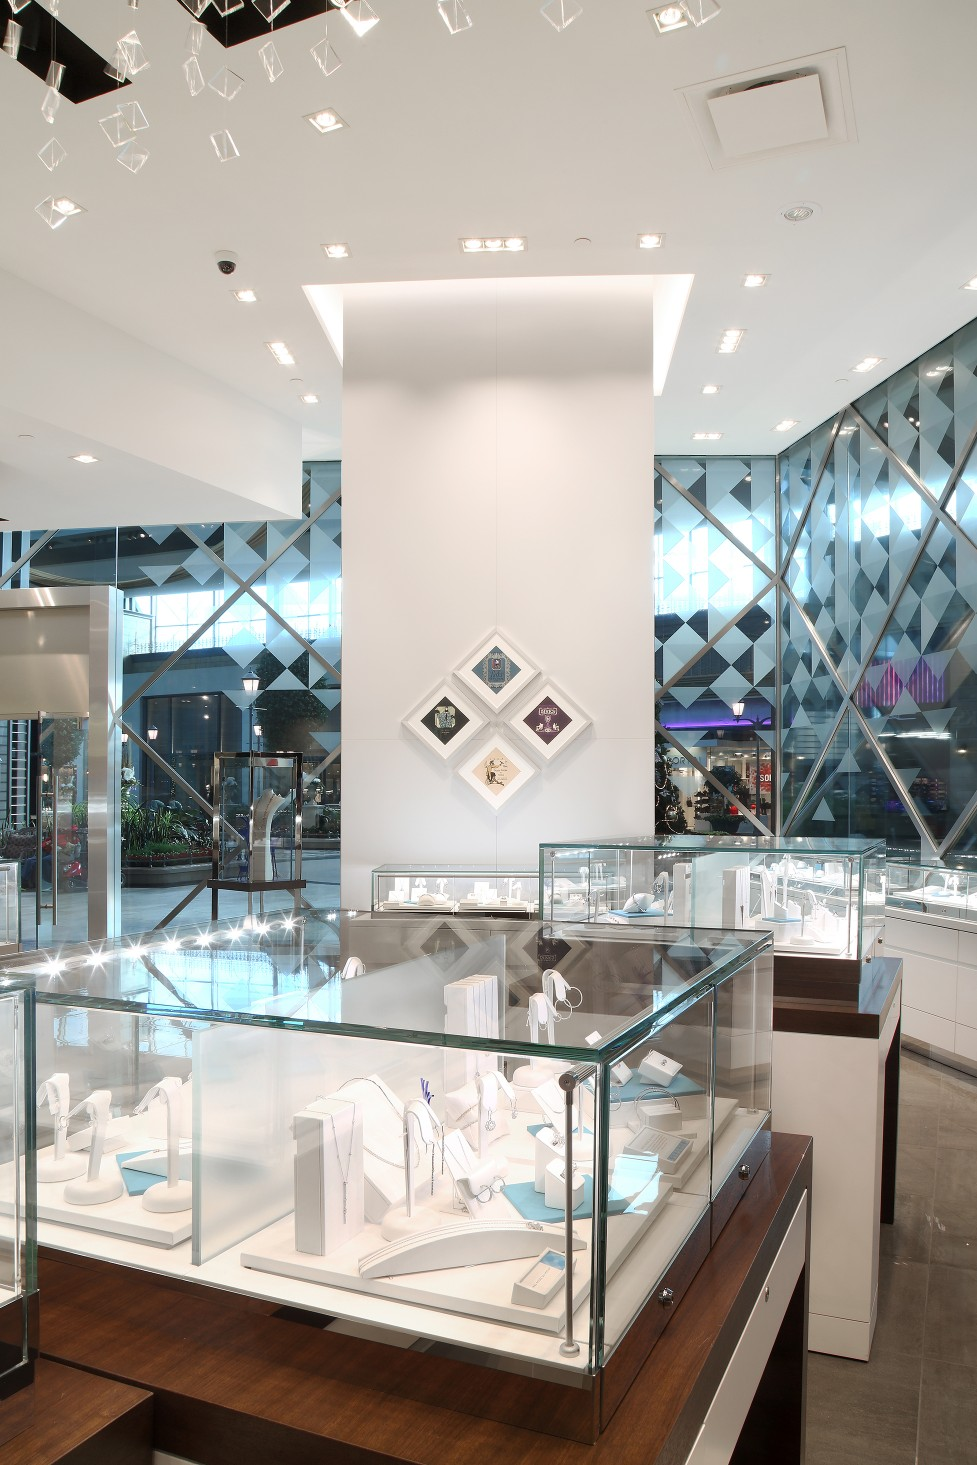 Birks turned to design and architect firm Ædifica, who chose a mix of downlights in 3000K and 3500K.